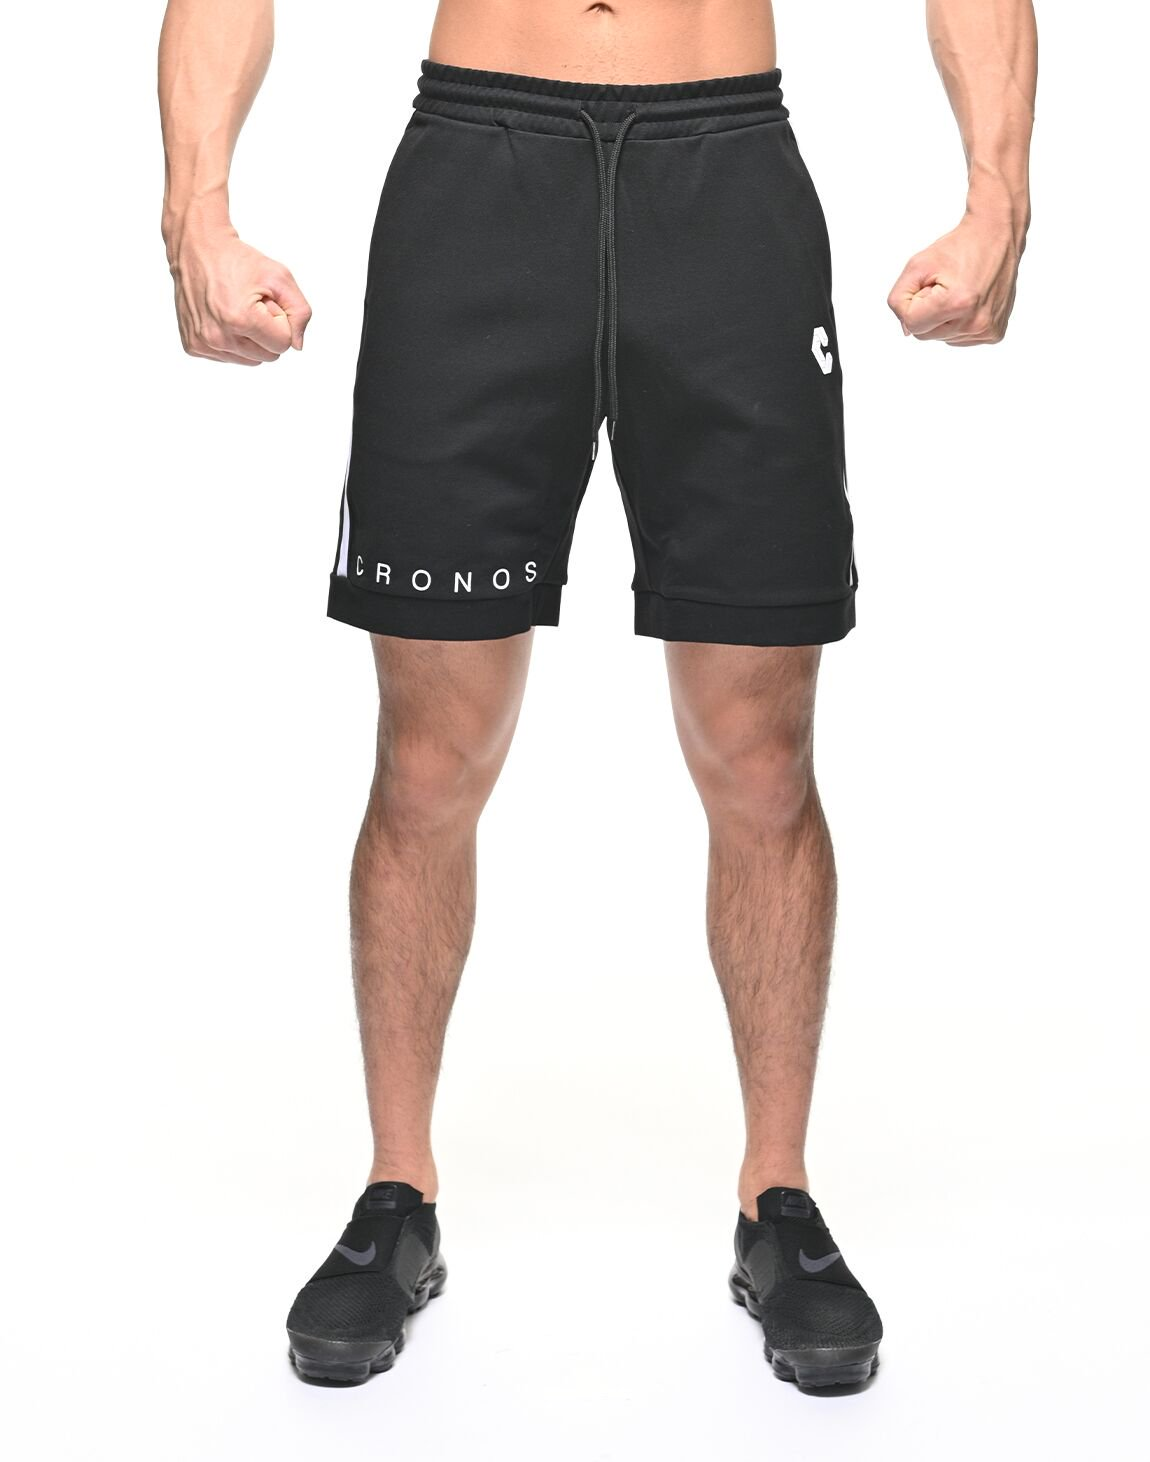 <img class='new_mark_img1' src='https://img.shop-pro.jp/img/new/icons55.gif' style='border:none;display:inline;margin:0px;padding:0px;width:auto;' />CRONOS TWOLINE  SHORTS【BLACK】